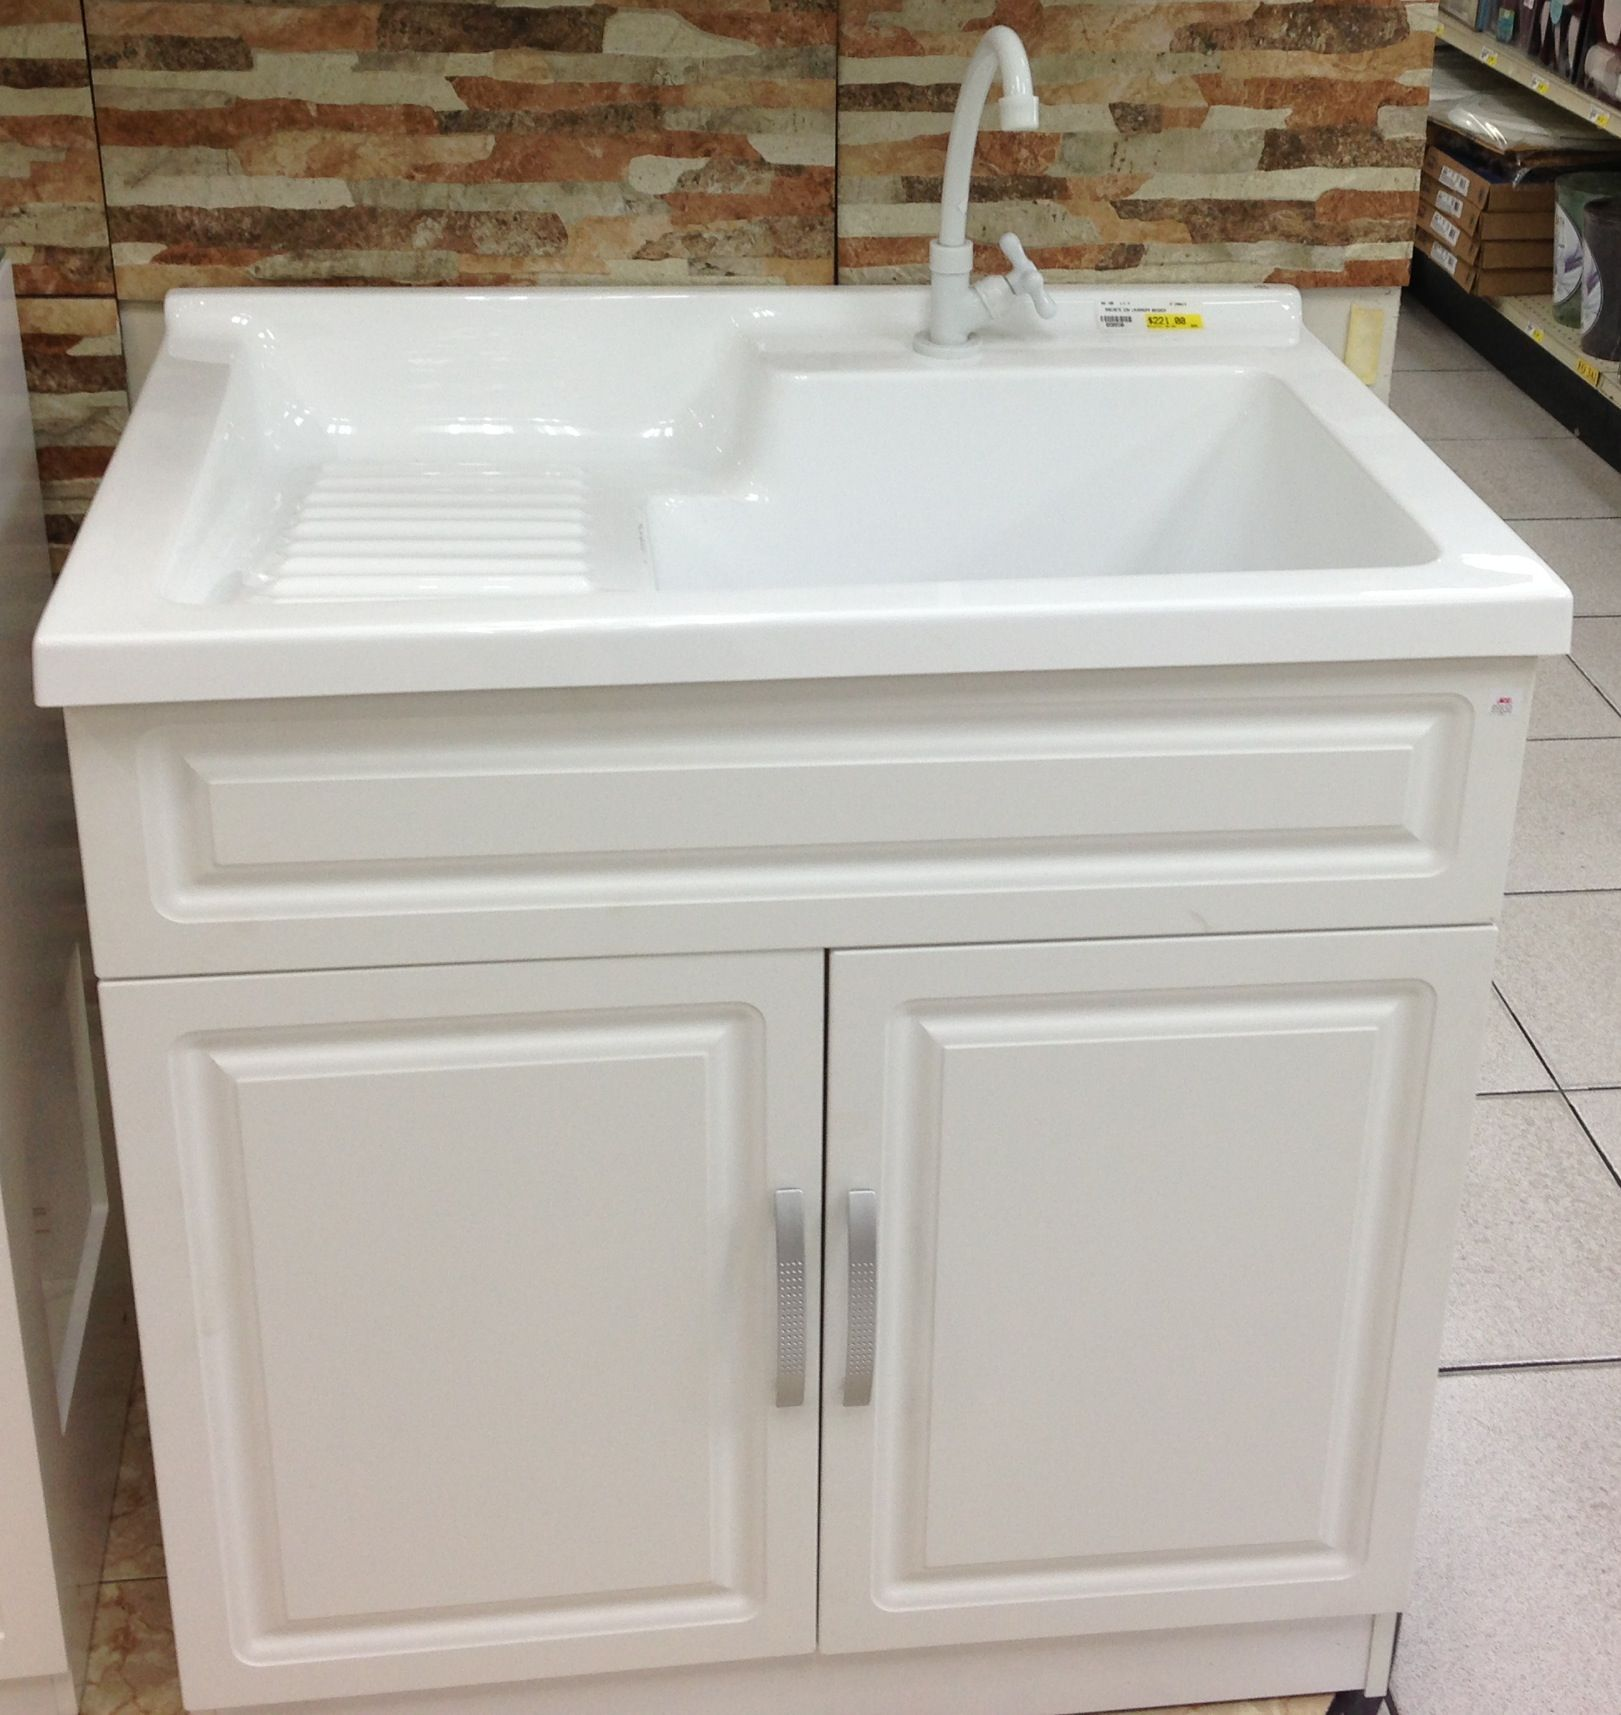 Utility Sinks For Laundry Room: Functional Laundry Sink. Corstone Self Rimming At Lowes